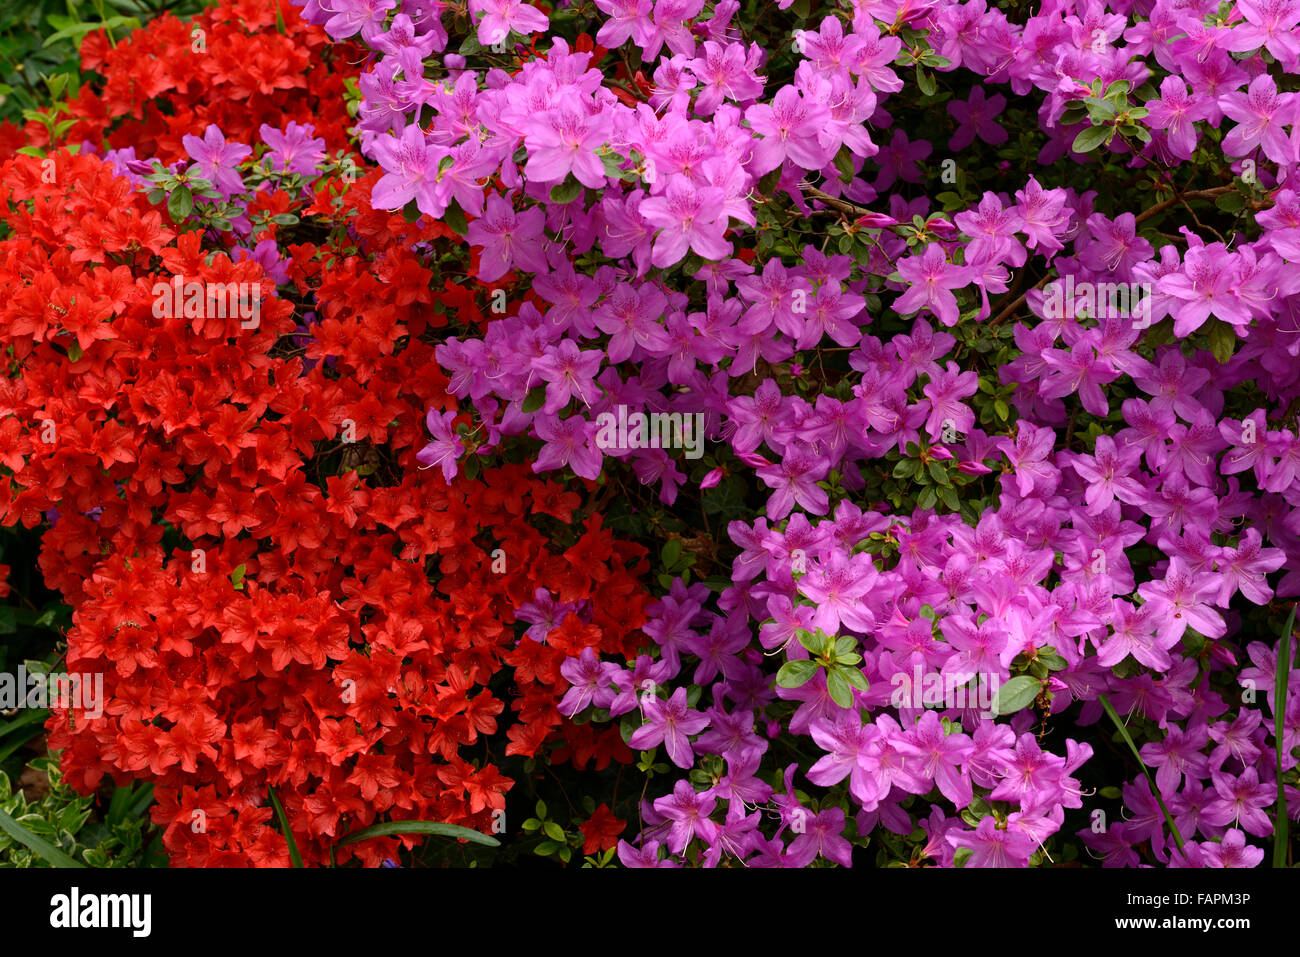 Azalea pink red flower flowers flowering display spring shrubs stock photo azalea pink red flower flowers flowering display spring shrubs blossom combination clashing colours rm floral dhlflorist Choice Image